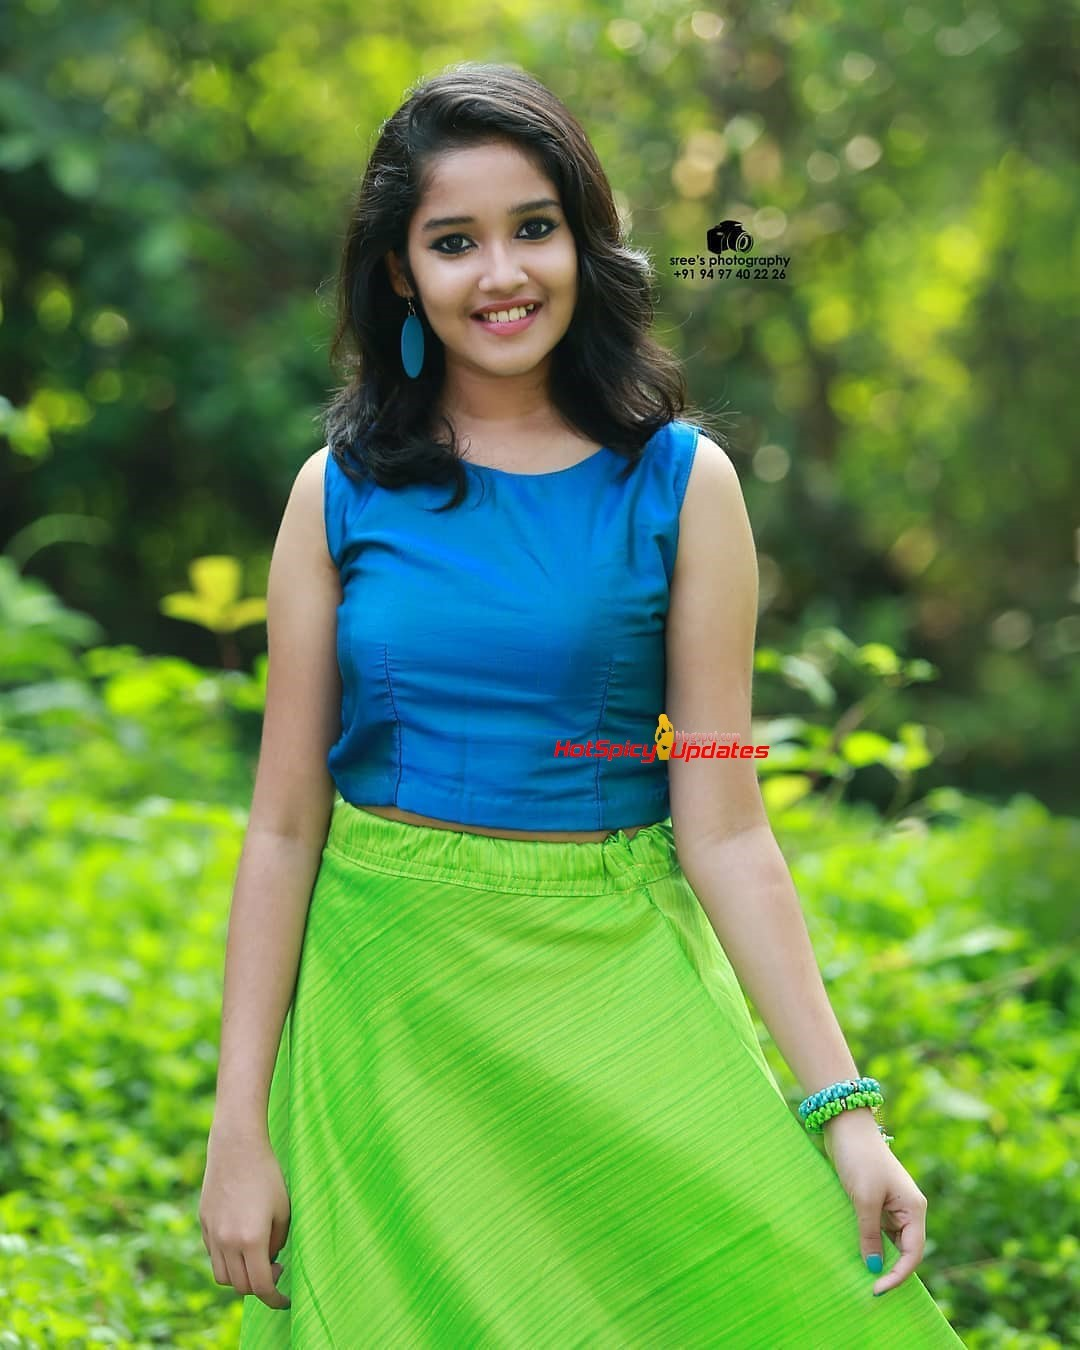 Anikha Surendran Aka Baby Anikha Cute And Stylish Photo -5430